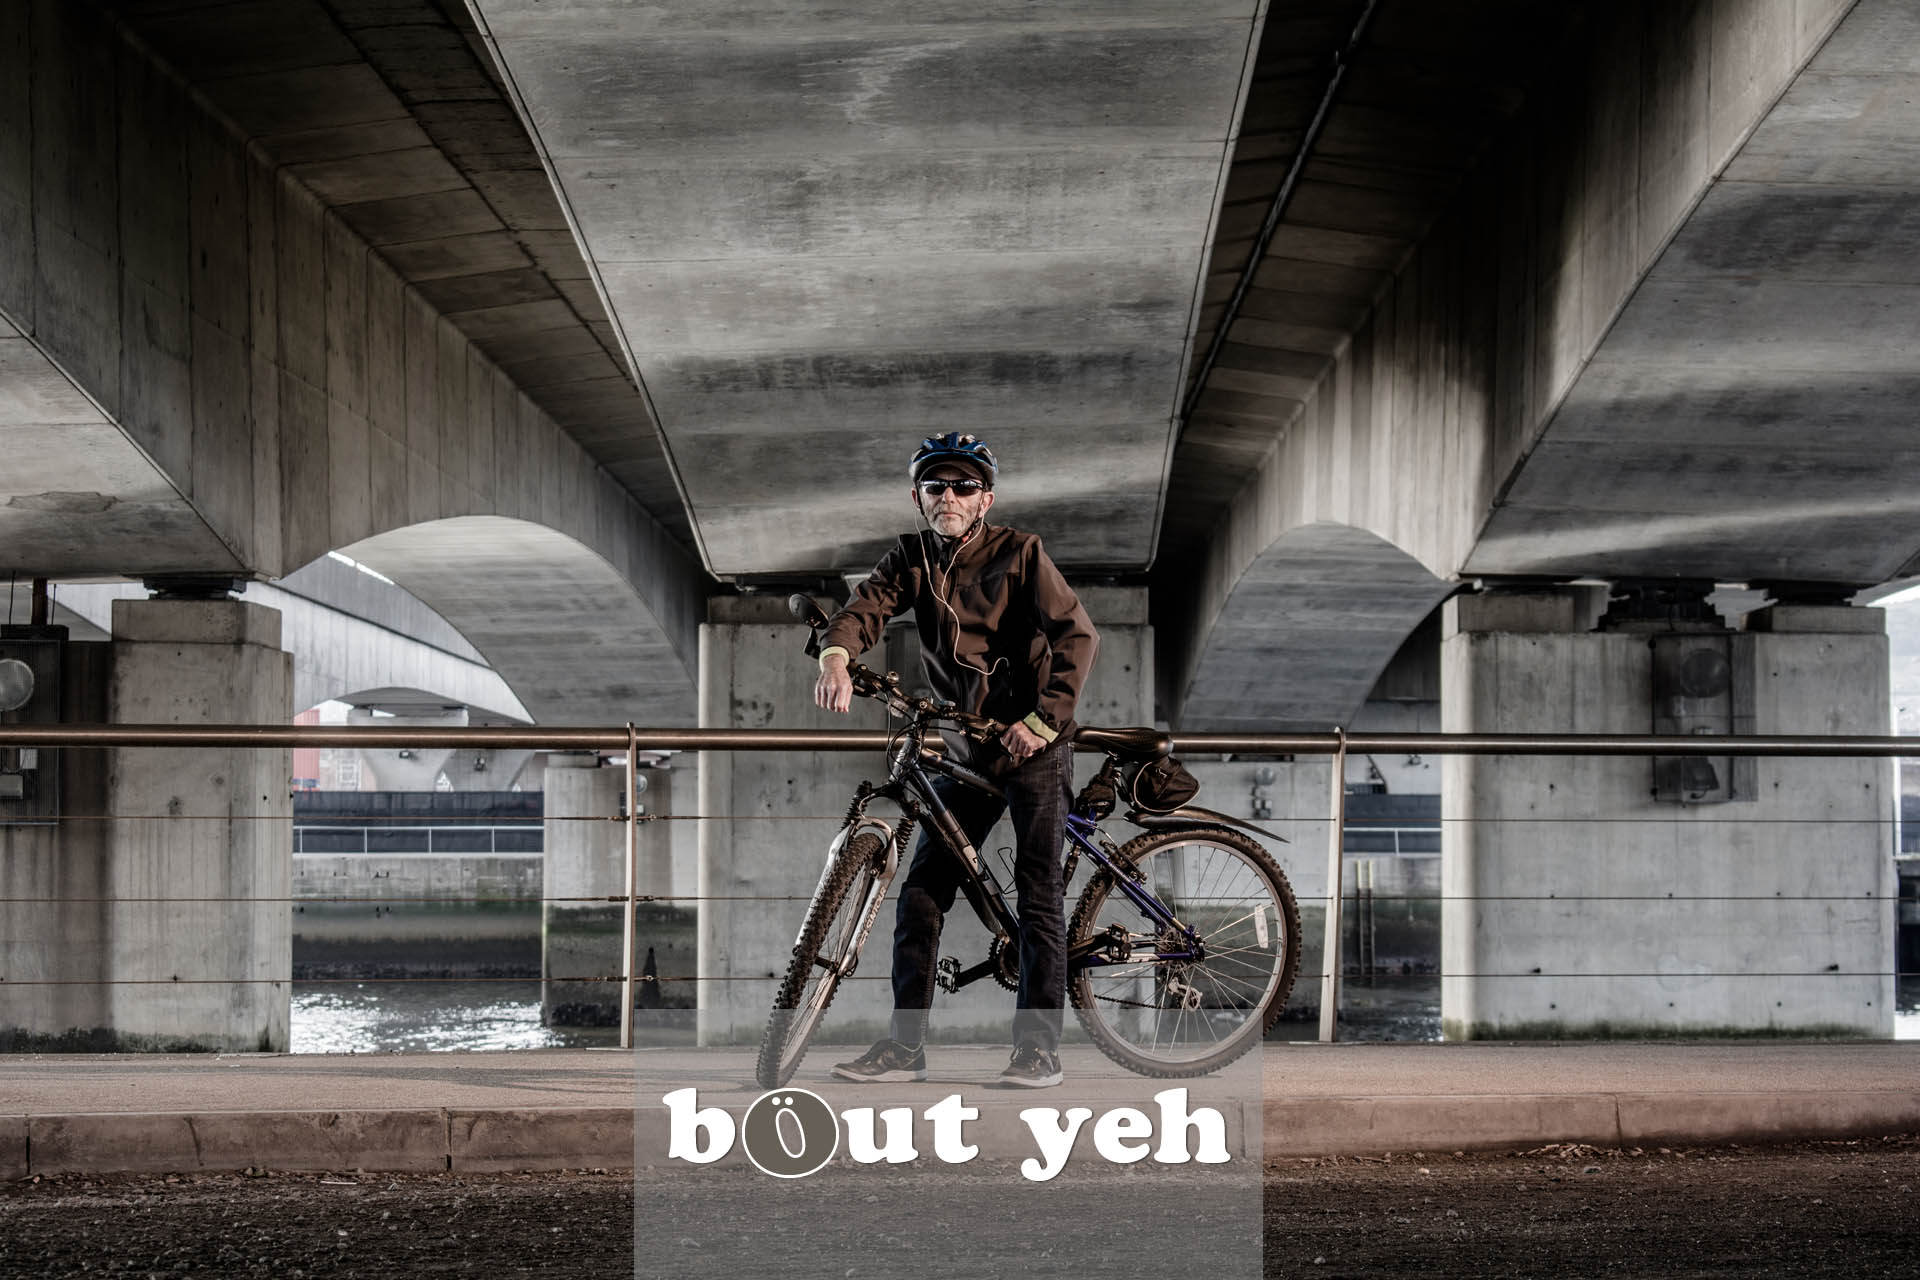 Jerry with bike under Dargan Bridge, Belfast - photo 5041, excluding call to action.